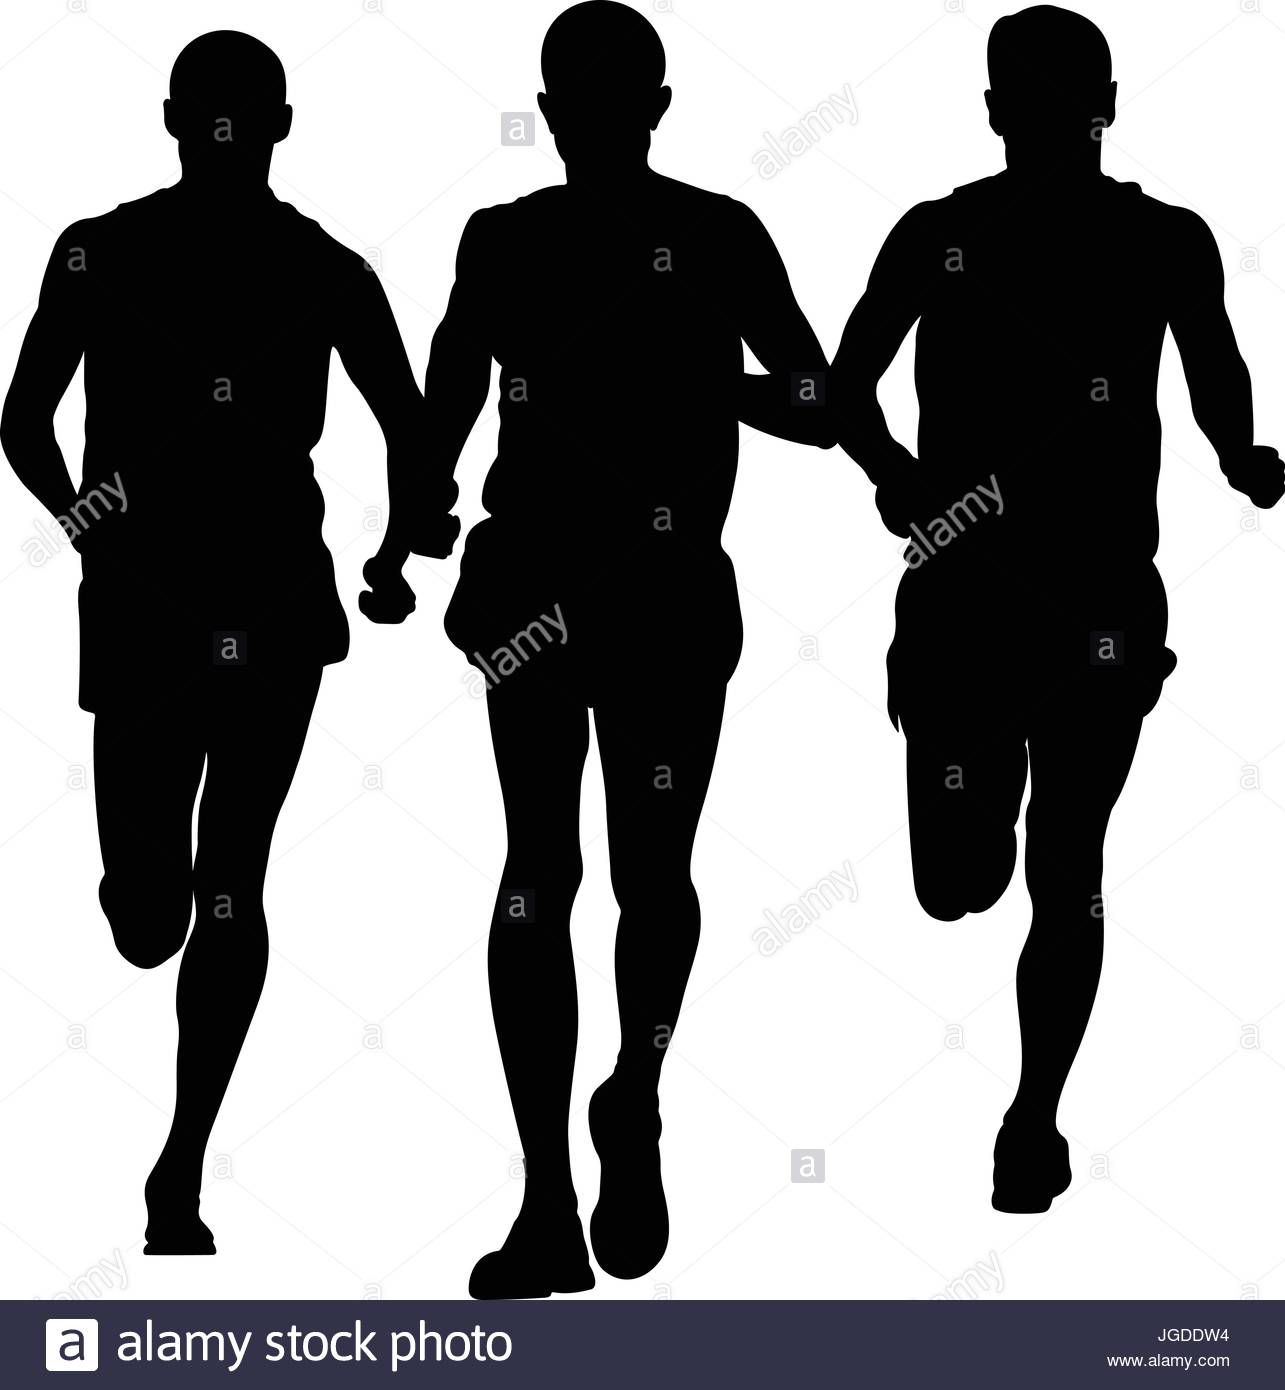 1285x1390 Group Of Runners Men Running Together Black Silhouette Stock